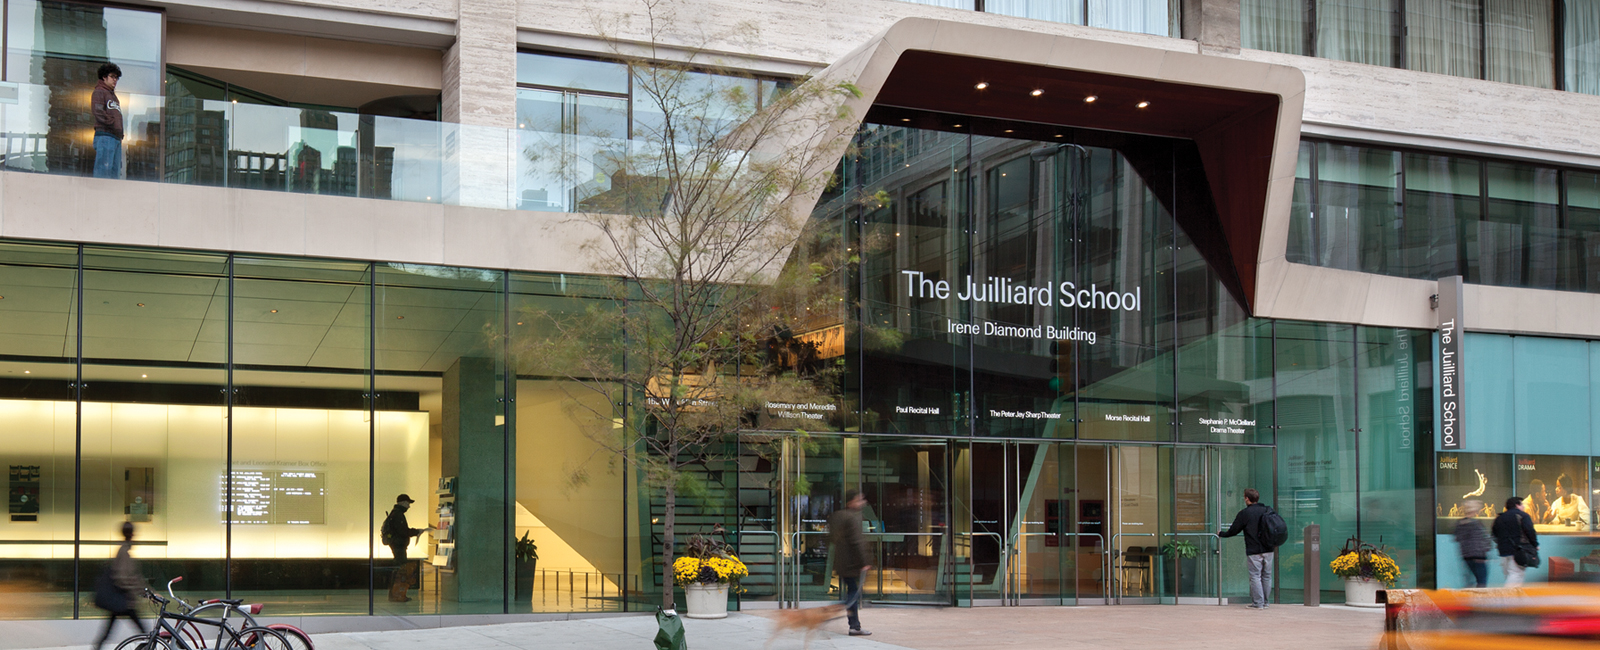 News William Christie Amp Paul Agnew At The Juilliard School